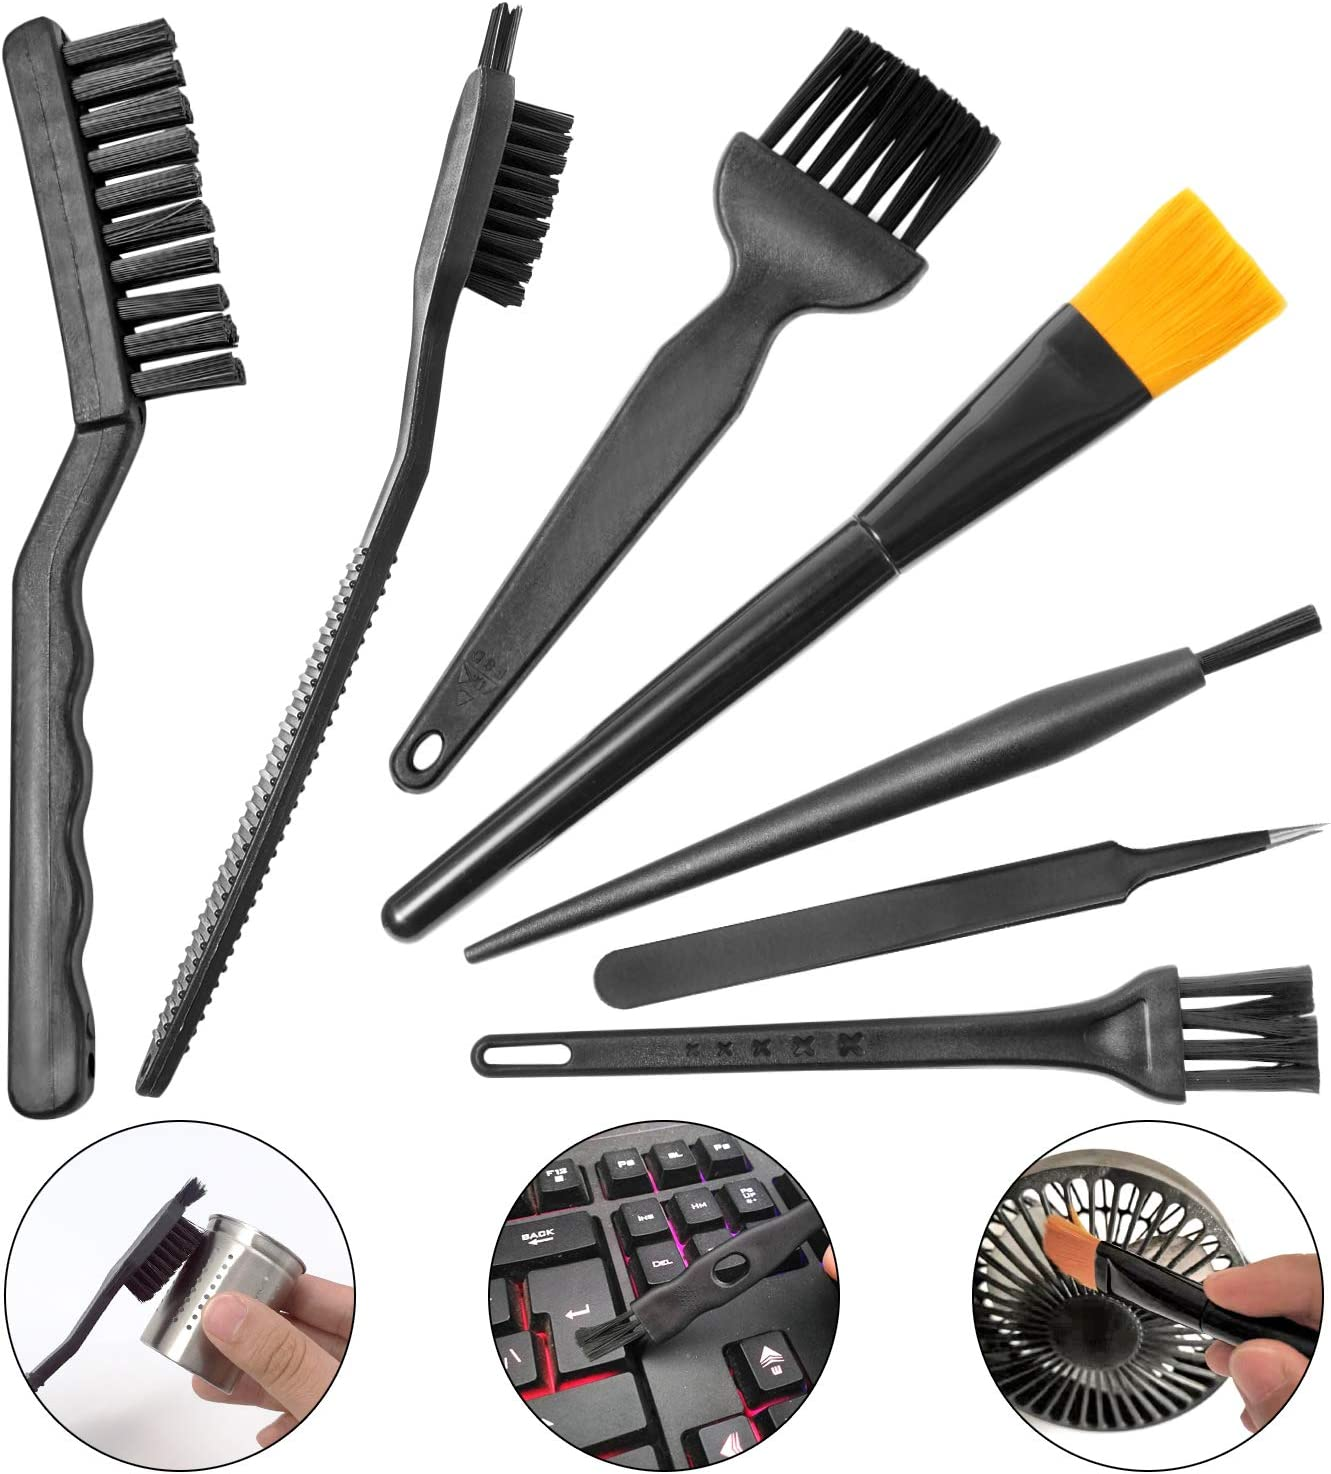 Computer PC Keyboard Laptop Electronics Camera Small Cleaning Brush Kit (Black, Set of 7)